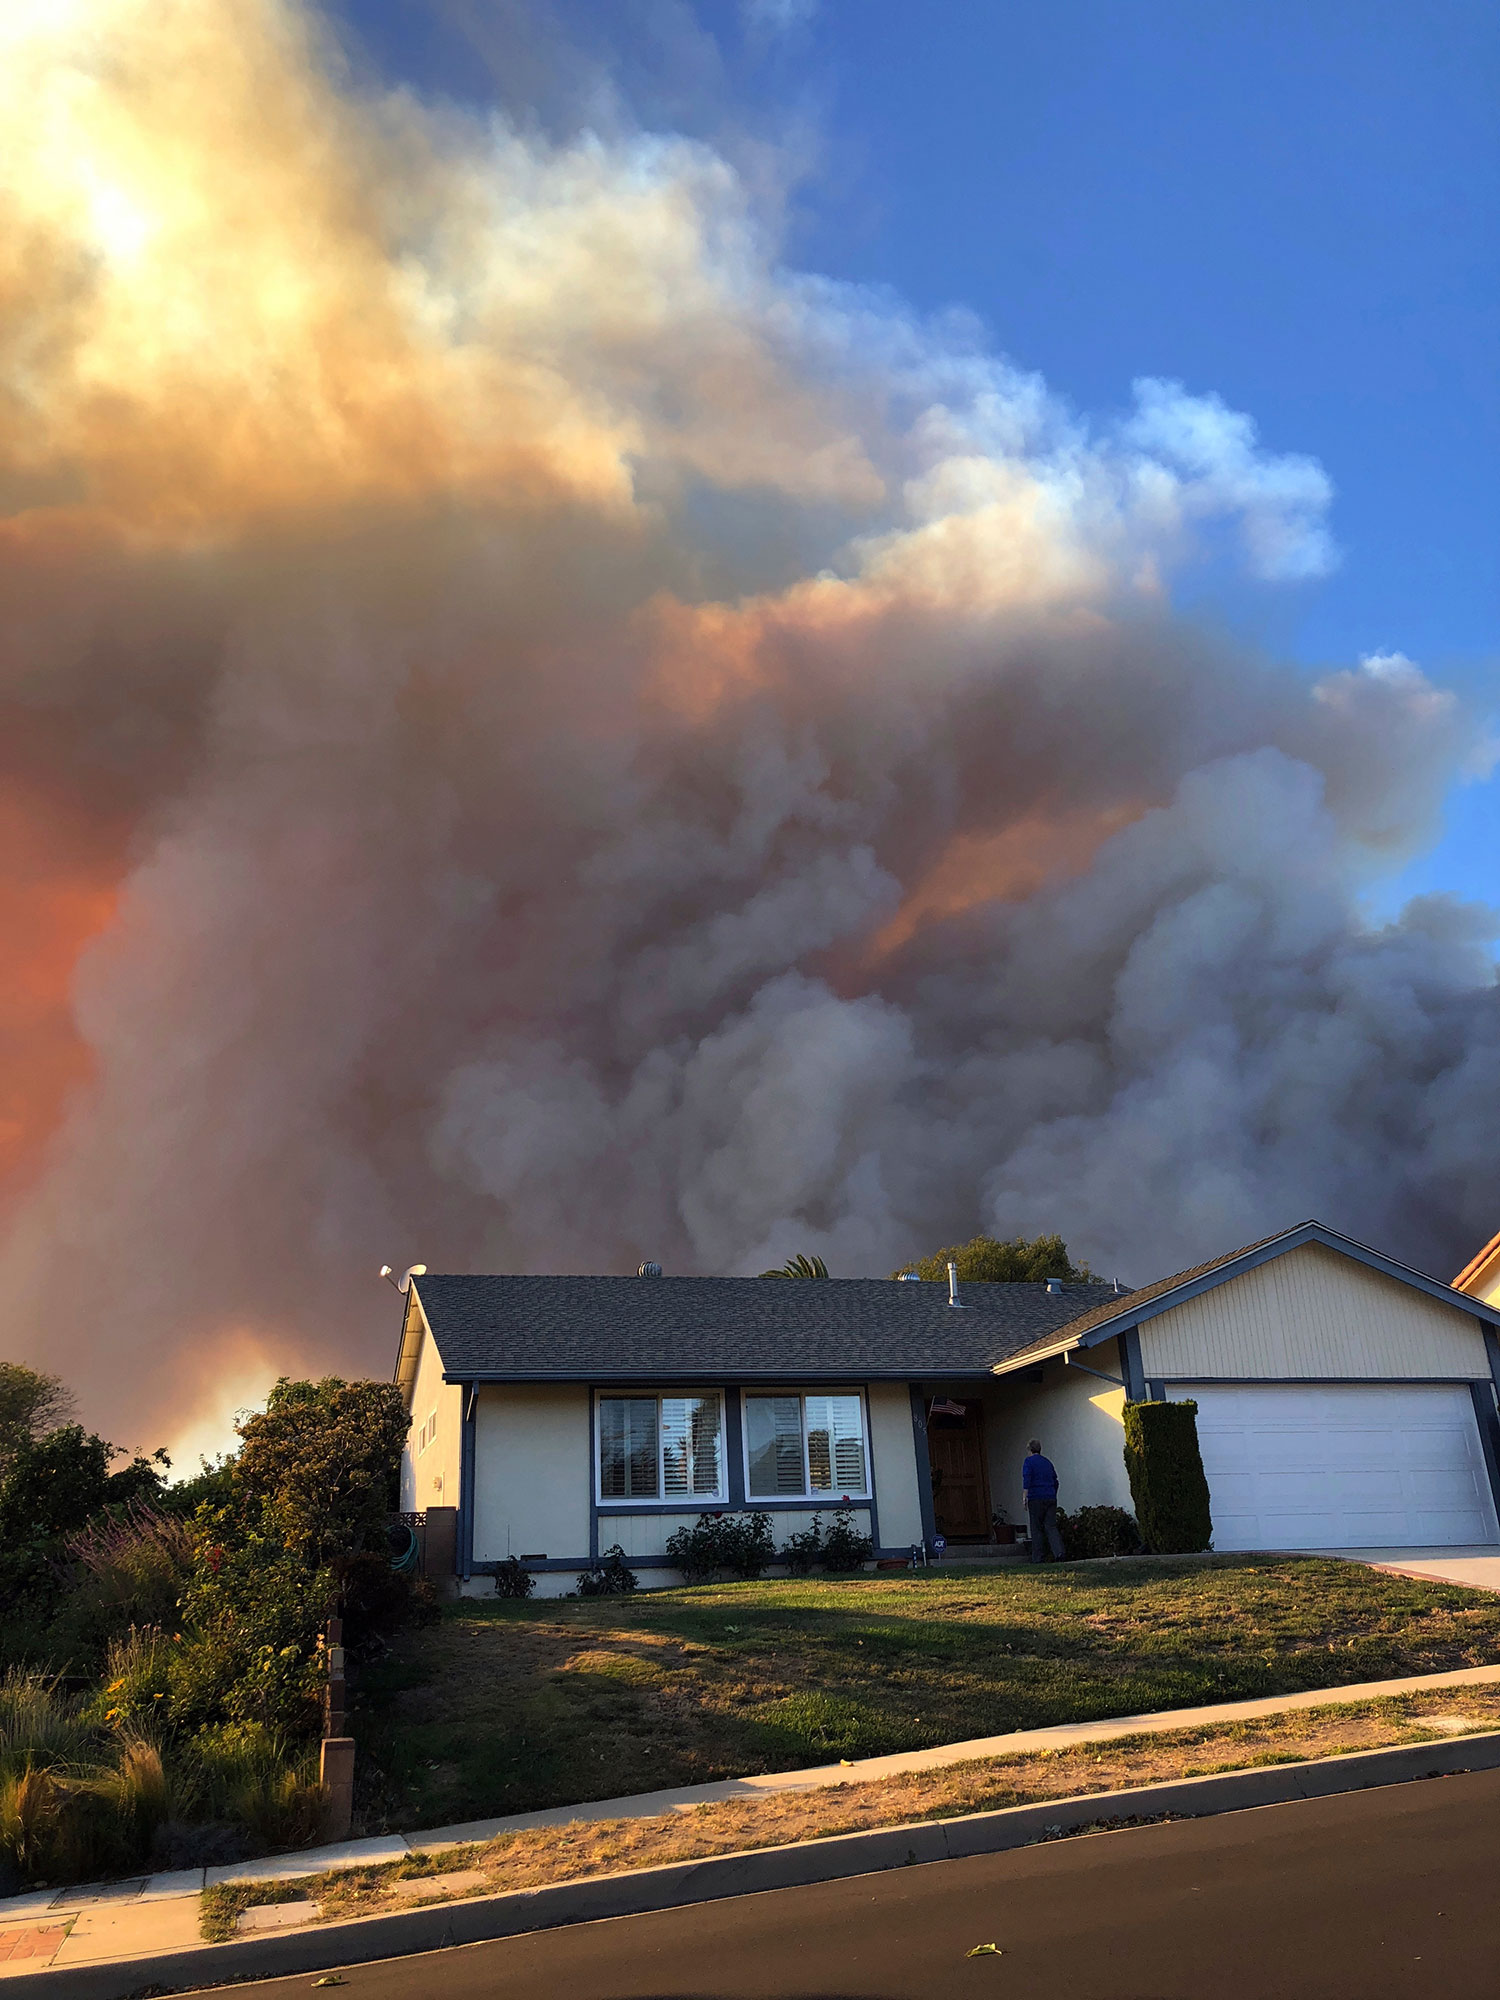 <div class='meta'><div class='origin-logo' data-origin='none'></div><span class='caption-text' data-credit='Kathleen Ronayne/AP Photo'>Flames loom up several miles away, seen behind a home in Thousand Oaks, Calif., as a wind-driven wildfire known as the Hill fire threatens the area on Nov. 4.</span></div>